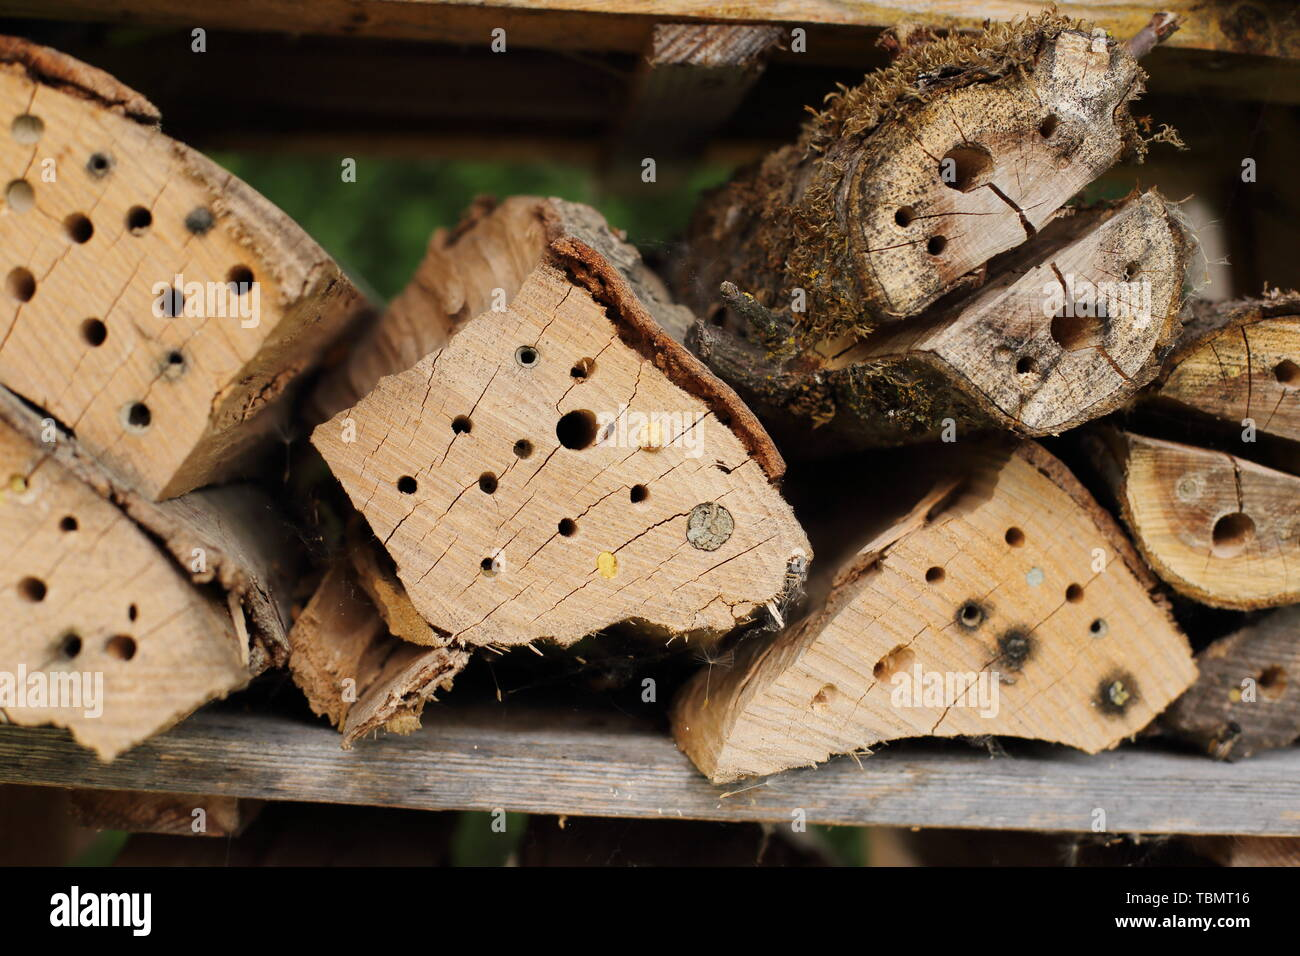 Different nests of Wild bees in a insect hotel - Stock Image